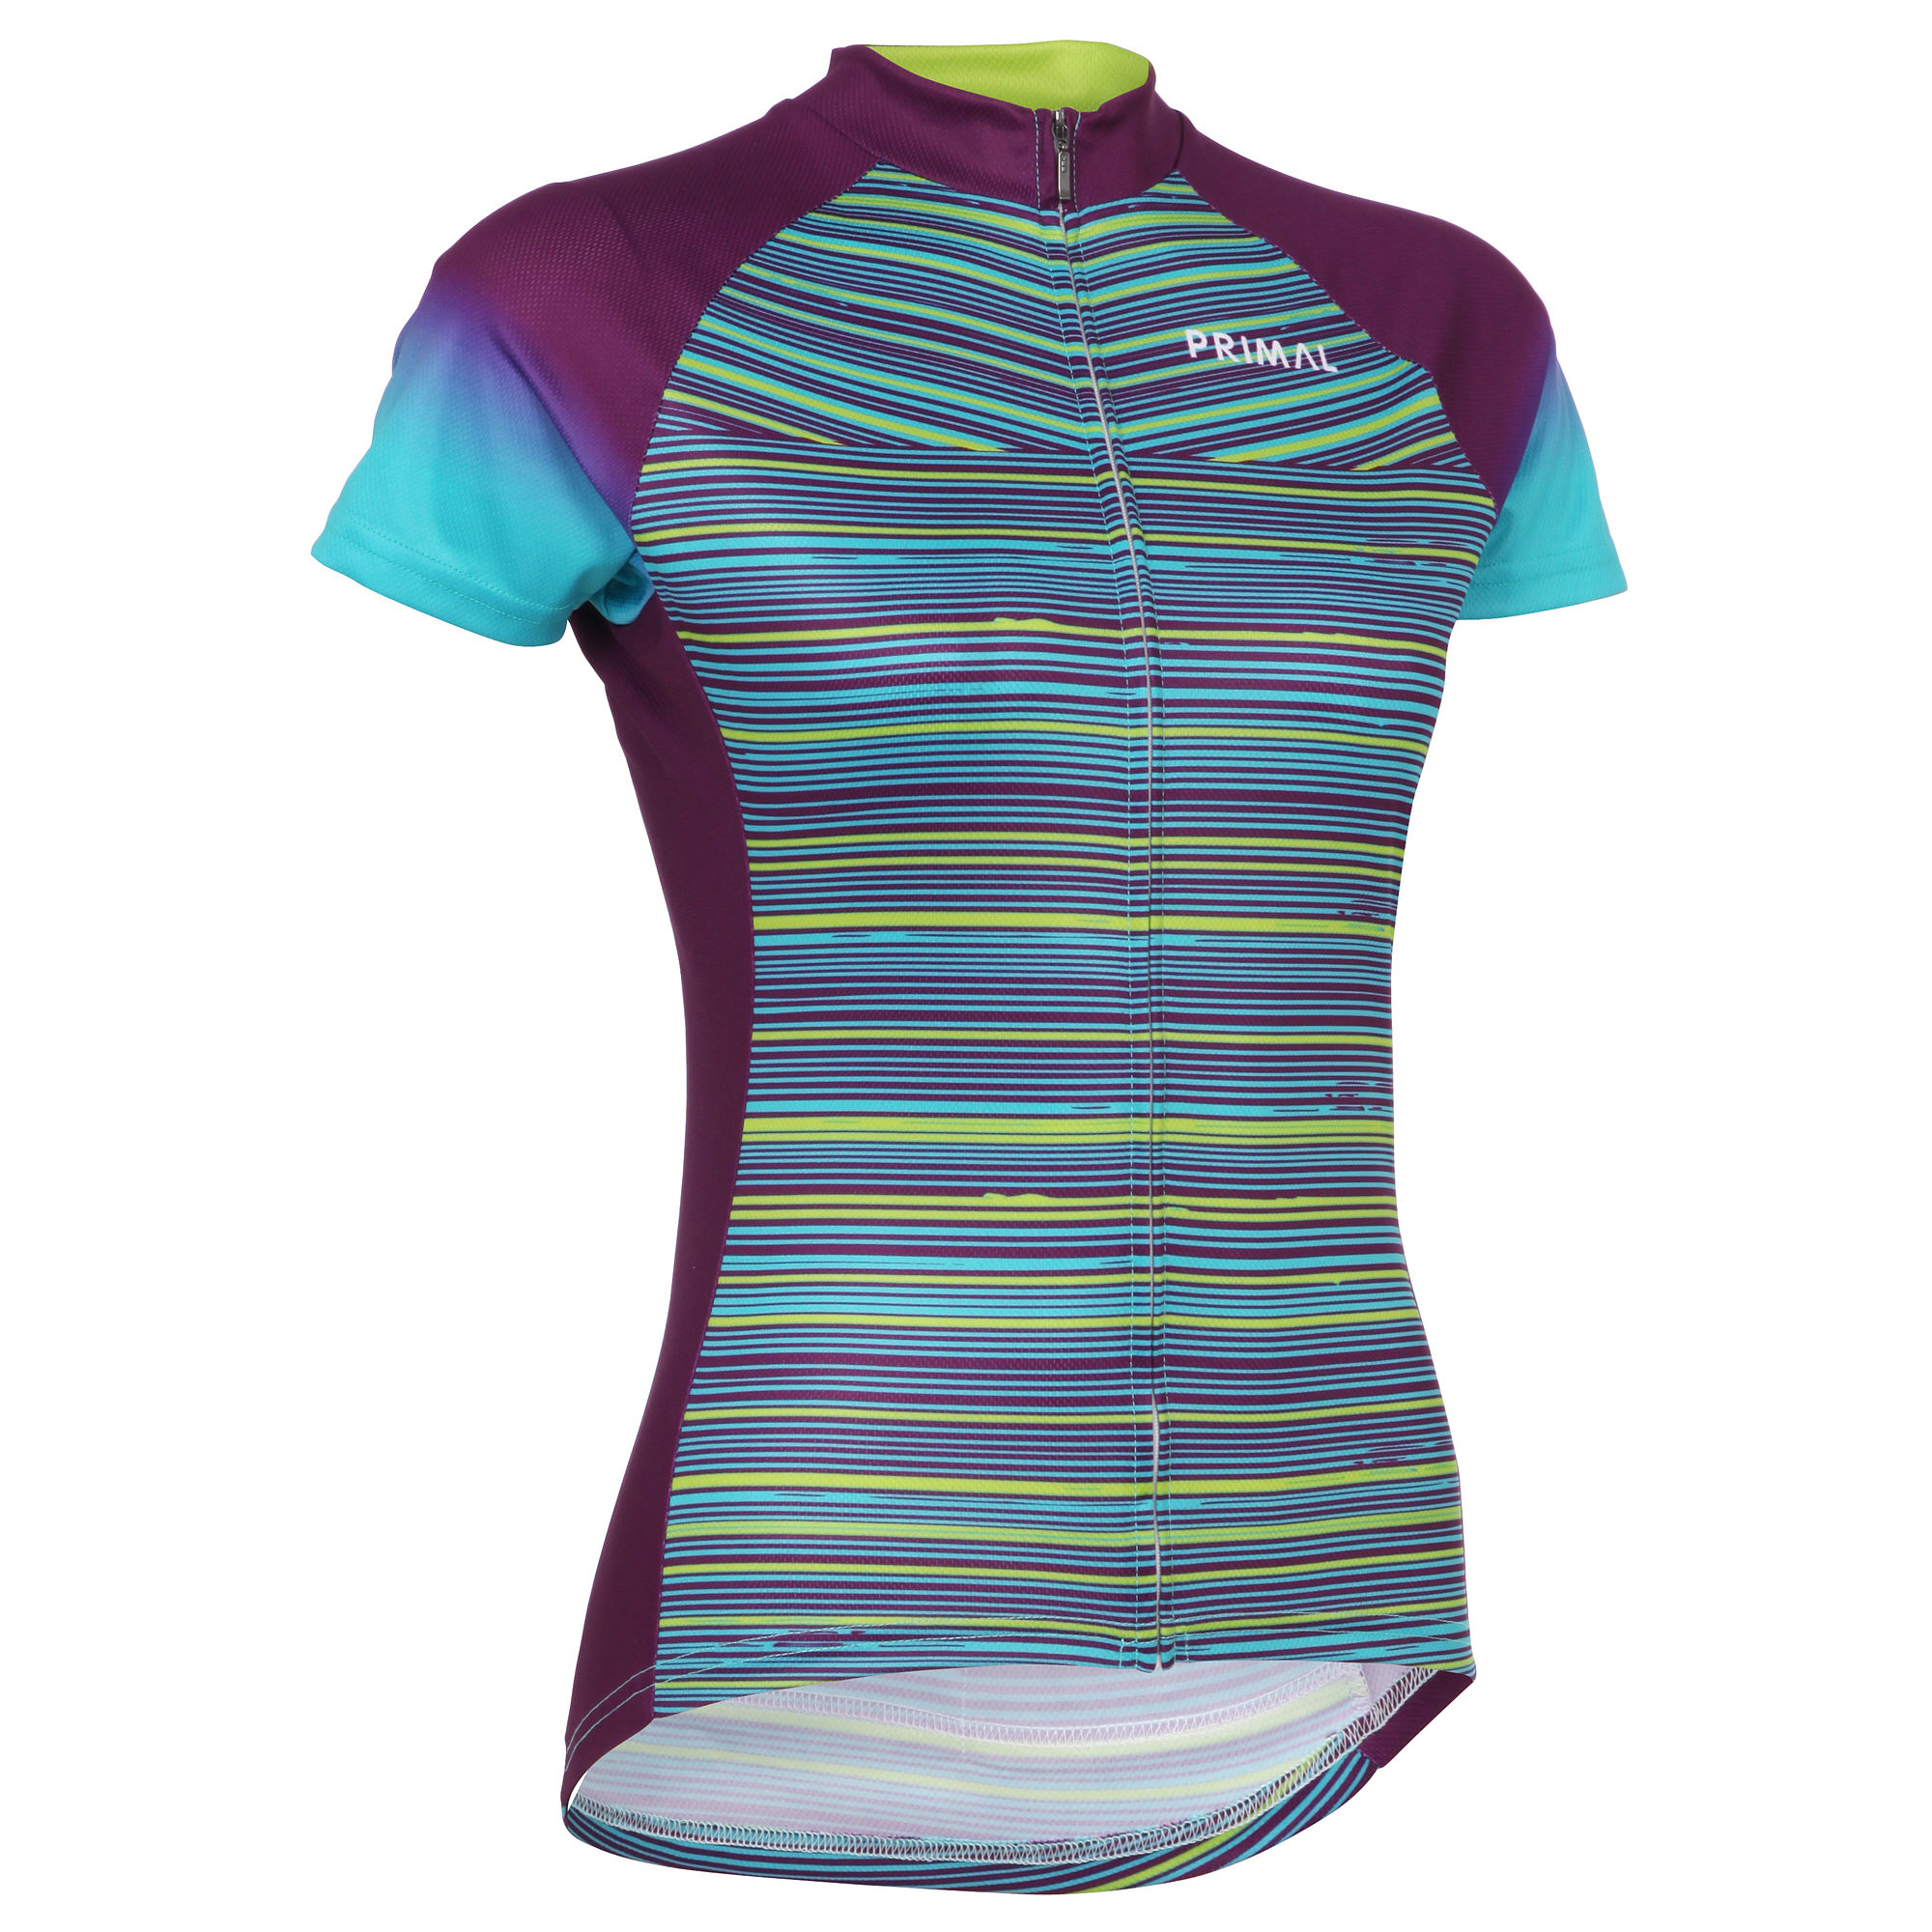 http://www.wigglestatic.com/product-media/5360111387/Primal-Women-s-Kismet-Short-Sleeve-Jersey-Short-Sleeve-Jerseys-Purple-SS16-KIS1J60W0-1.jpg?w=2000&h=2000&a=7